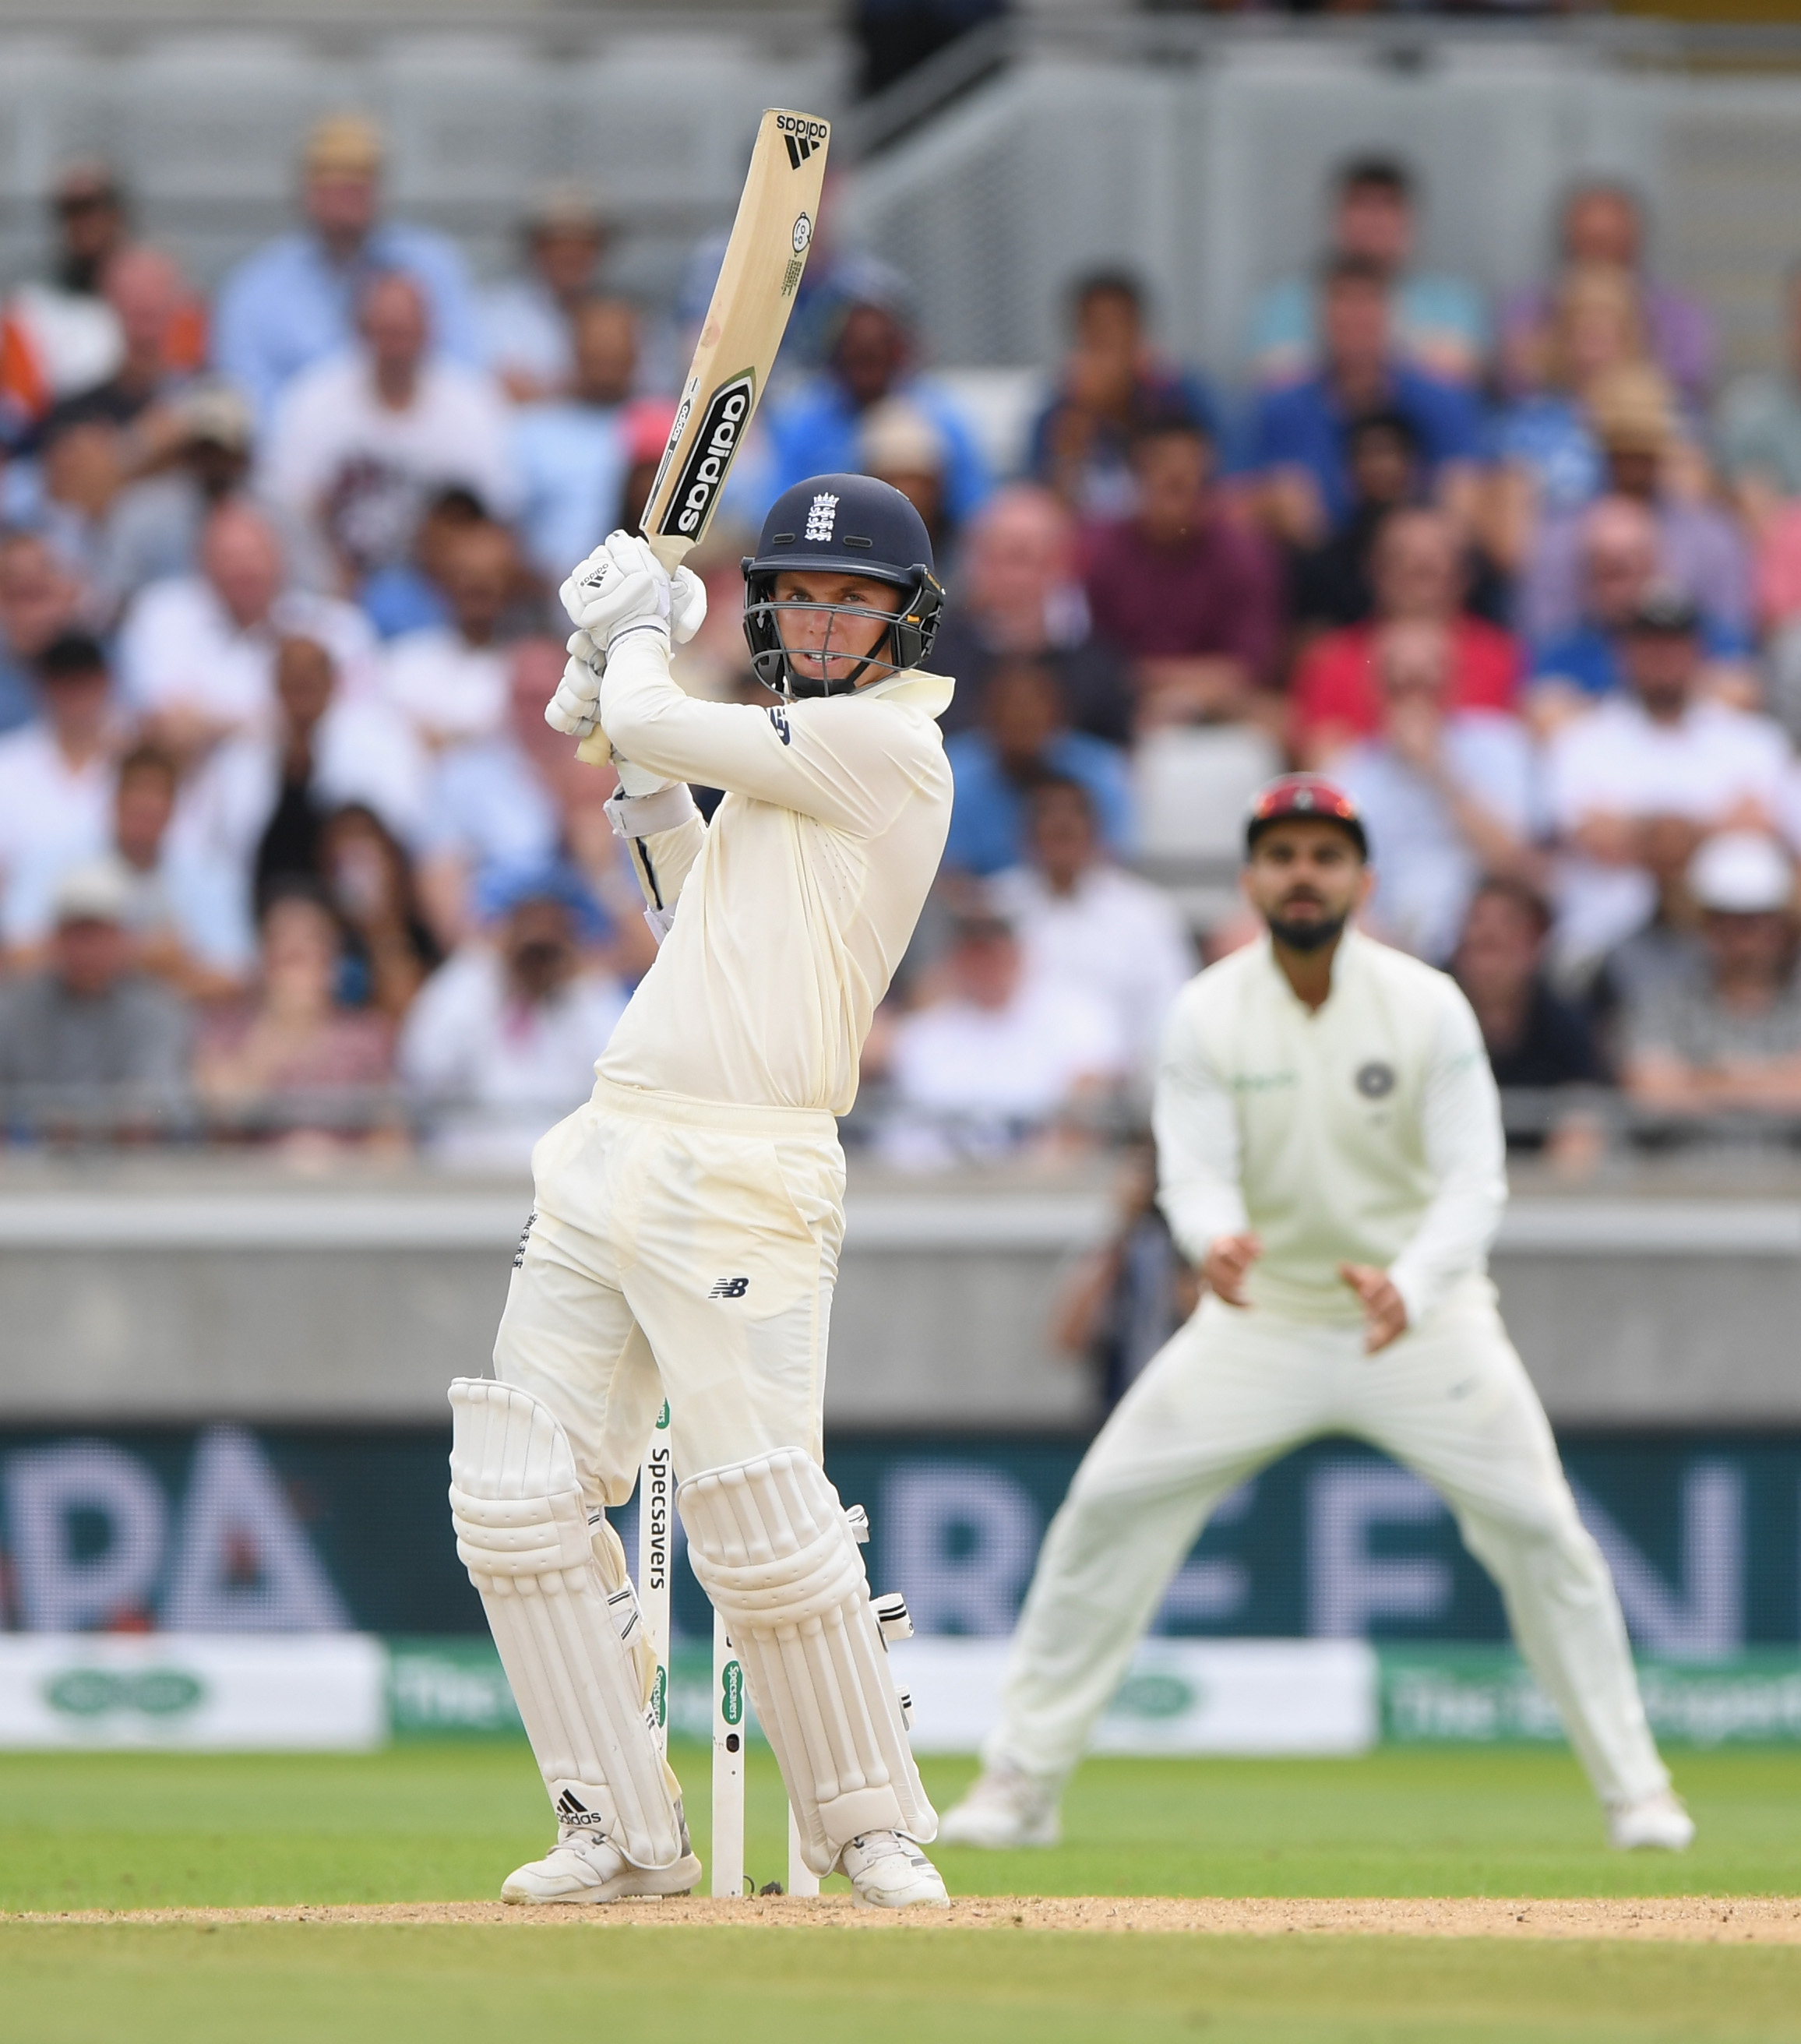 Curran's 63 in the second innings turned the whole game around. (Getty)